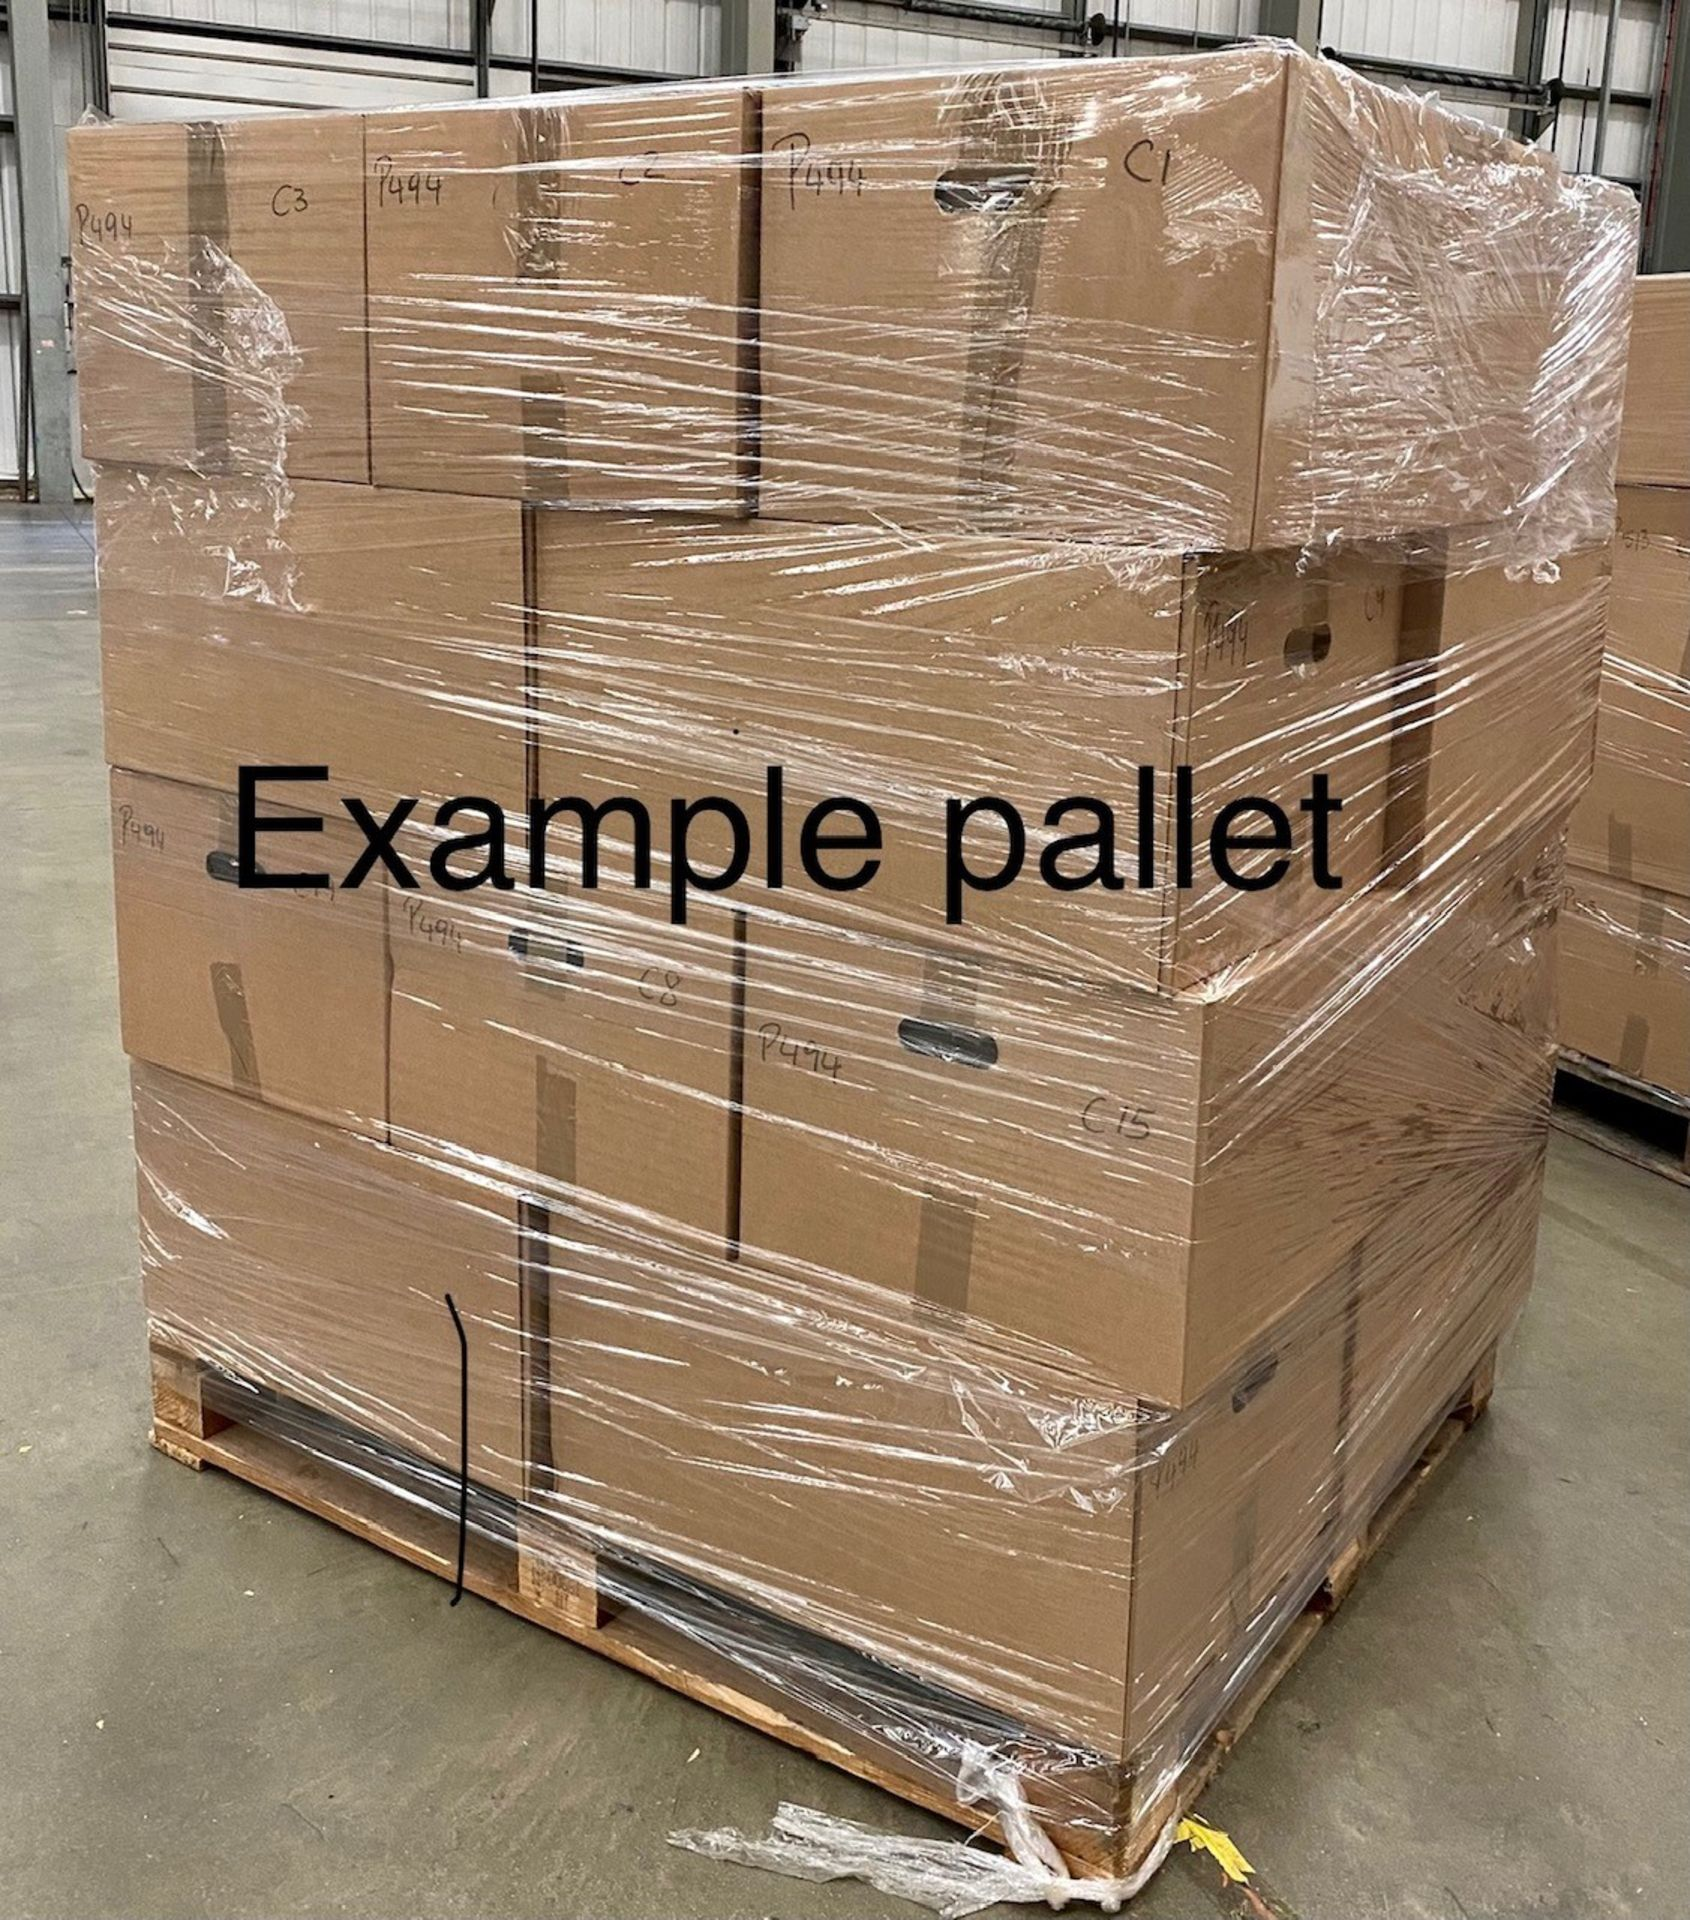 1 x mixed pallet = 265 items of Grade A M&S Womenswear Clothing. Total RRP £7430.00 - Image 8 of 9